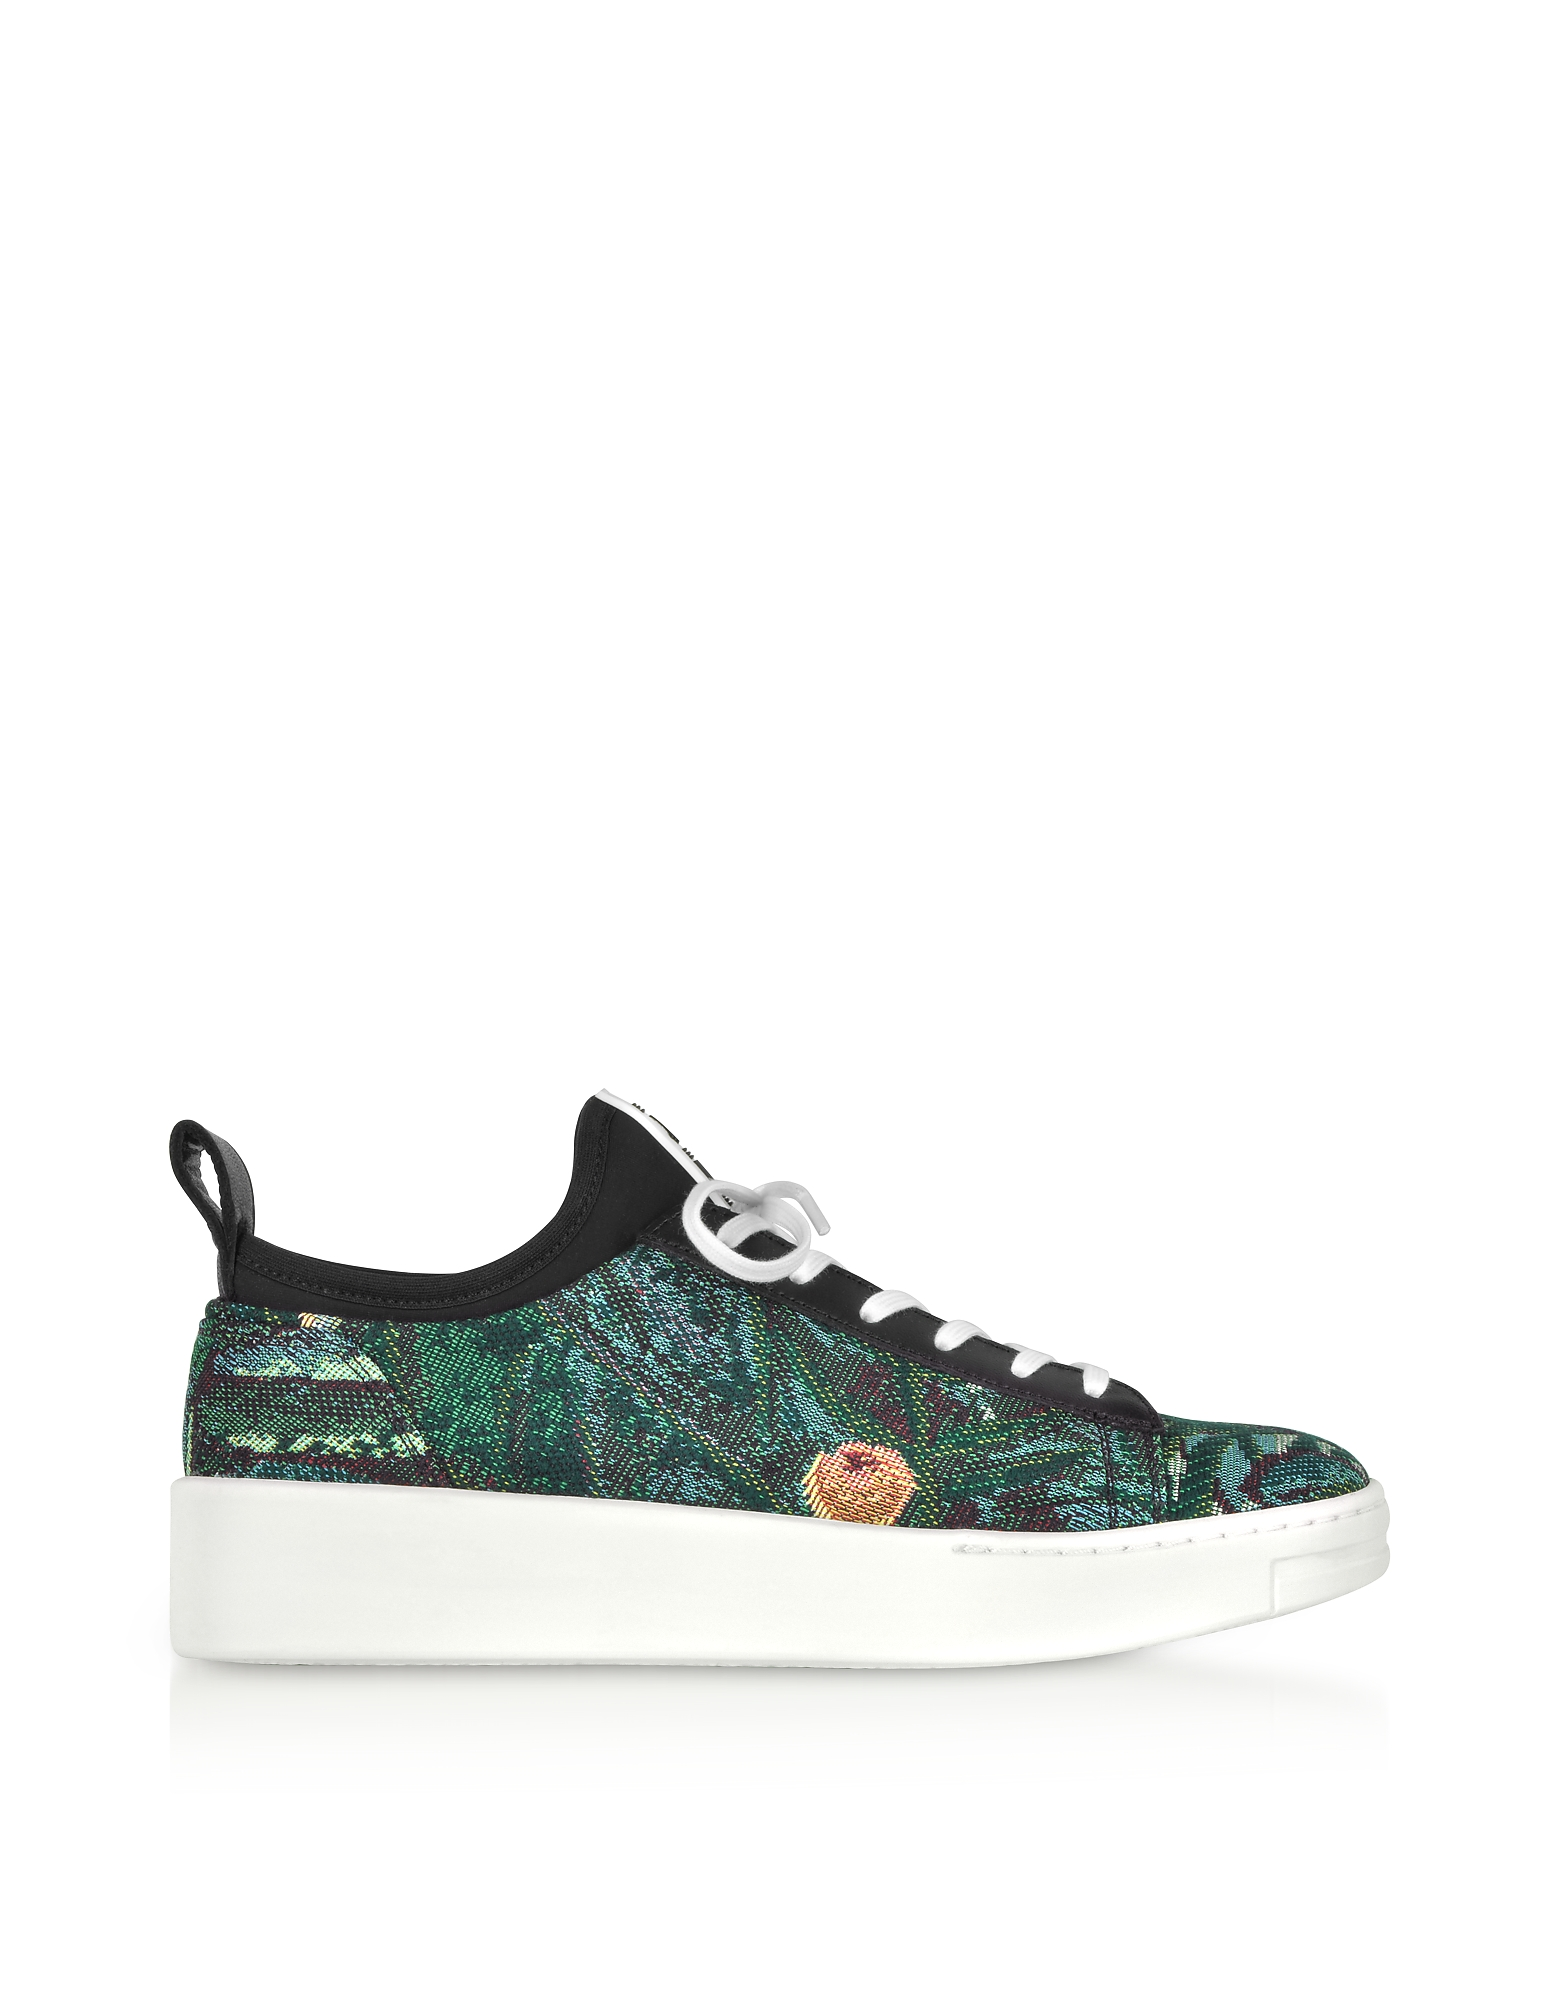 Kenzo Shoes, Tapestry Jacquard K-City Sneakers